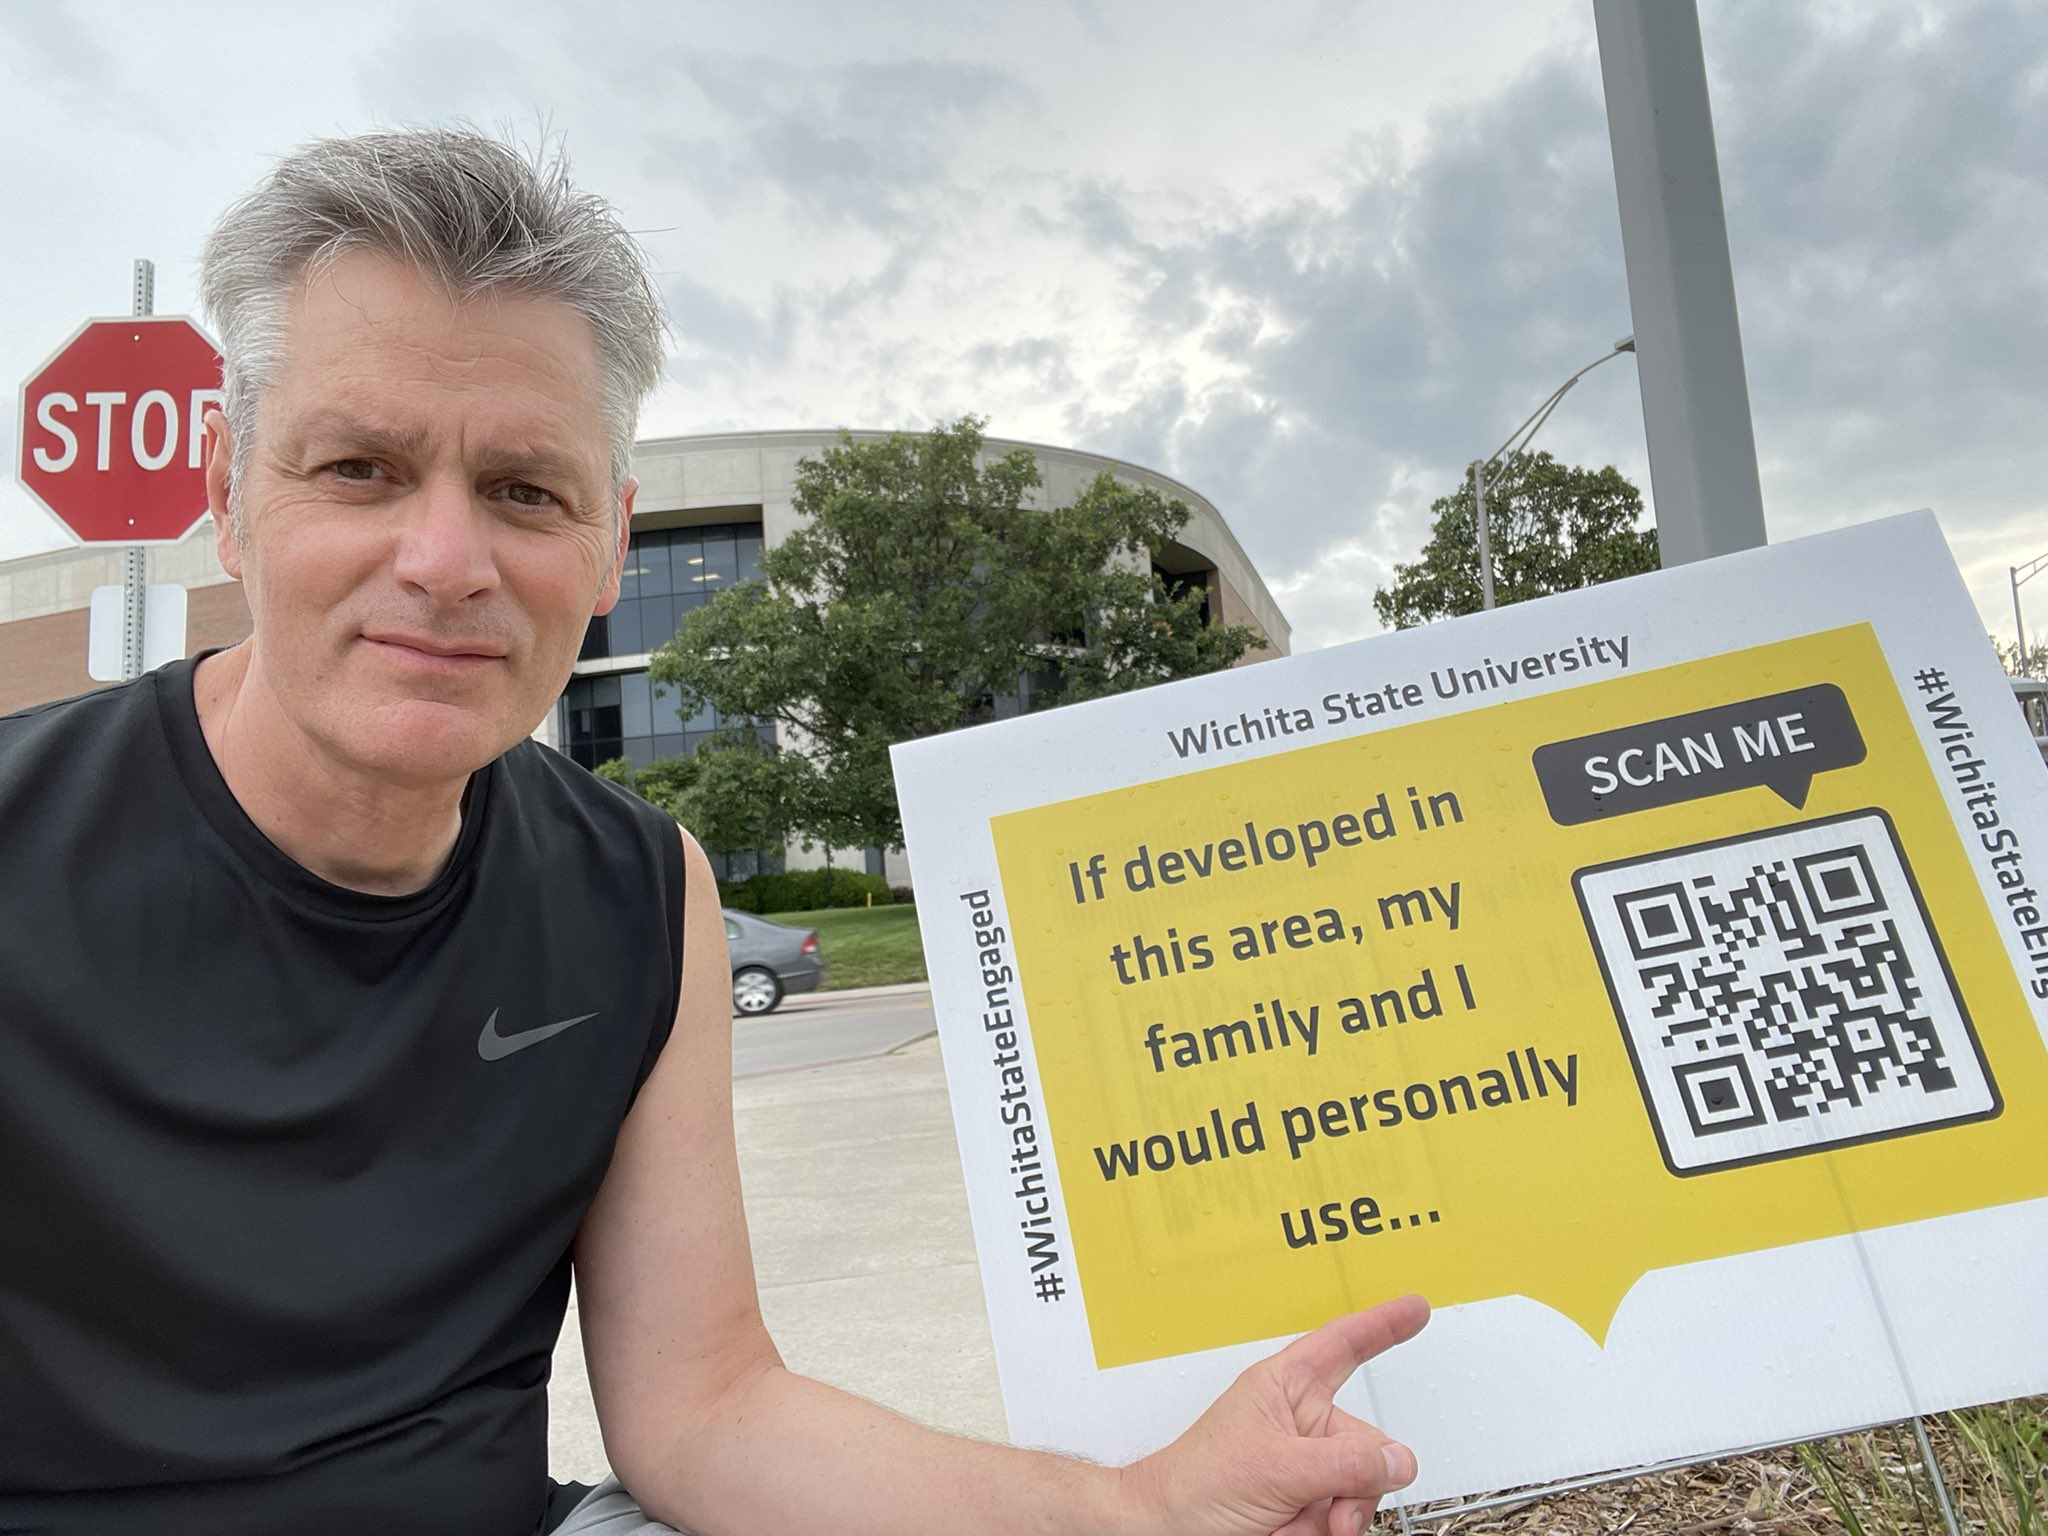 """WSU president Dr. Rick Muma poses with a sign that reads """"If developed in this area, my family and i would personally use ... """" There's also a QR Code and the words """"Scan Me."""""""